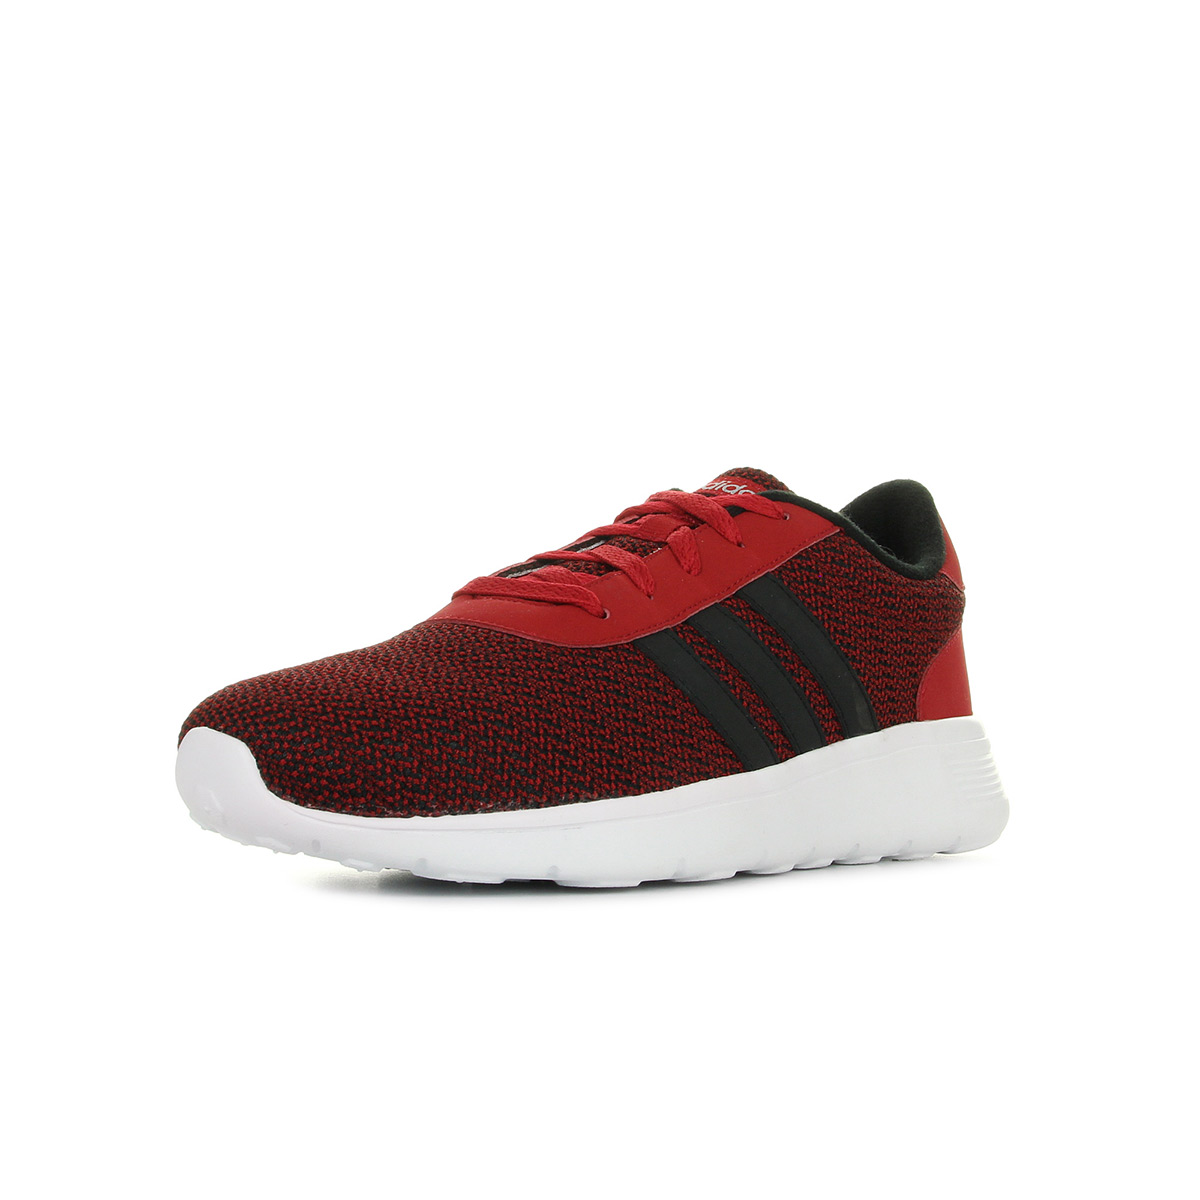 adidas neo racer lite homme